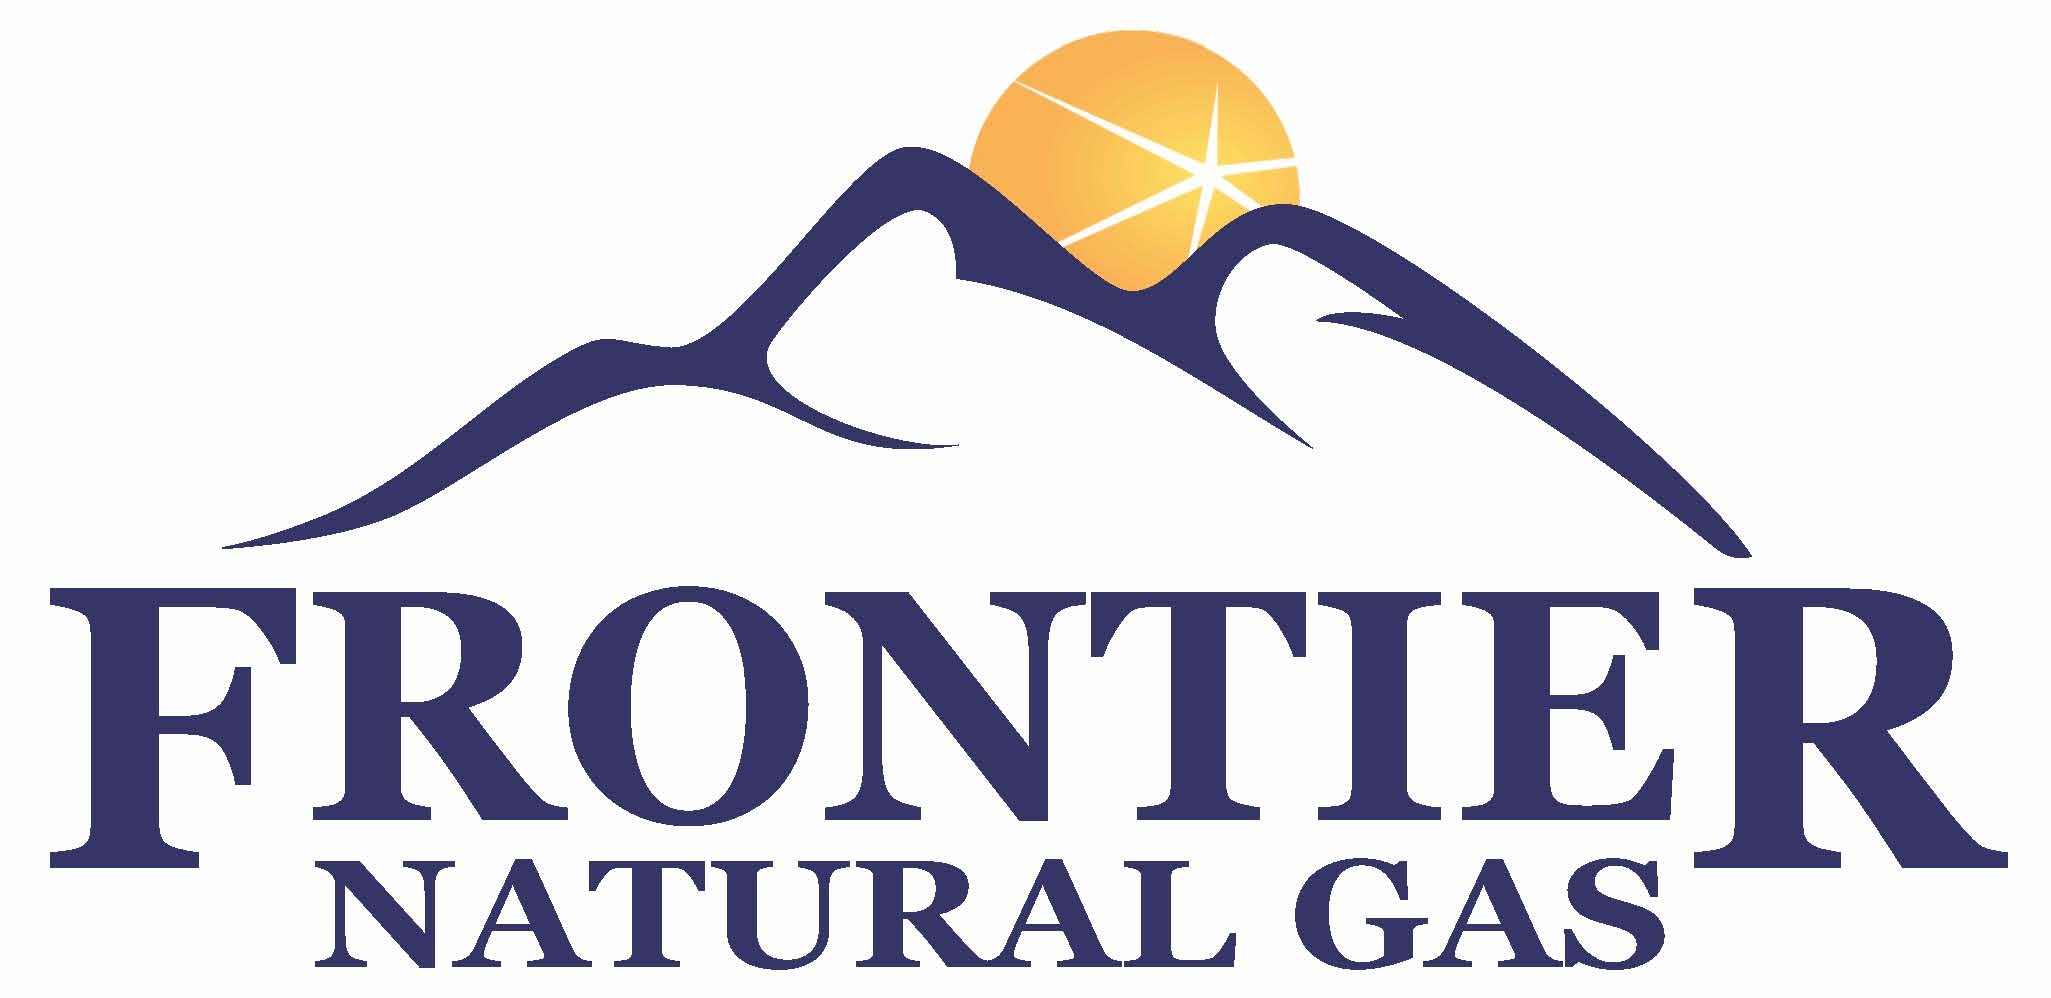 Frontier Natural Gas Company logo